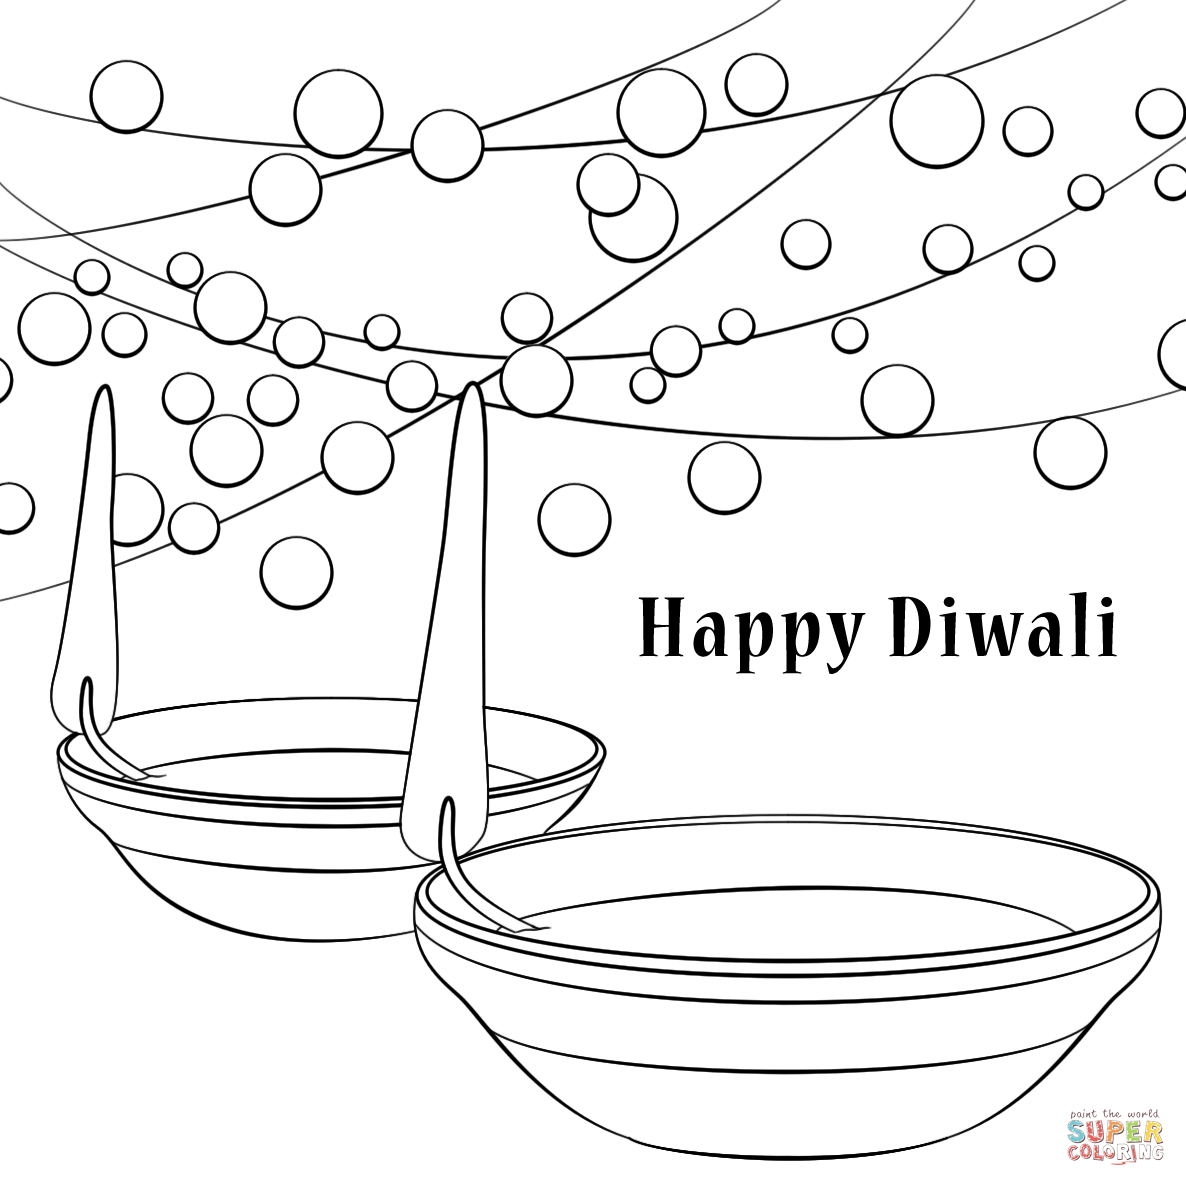 pictures of diwali for colouring diwali coloring pages free large images diwali colouring for pictures of